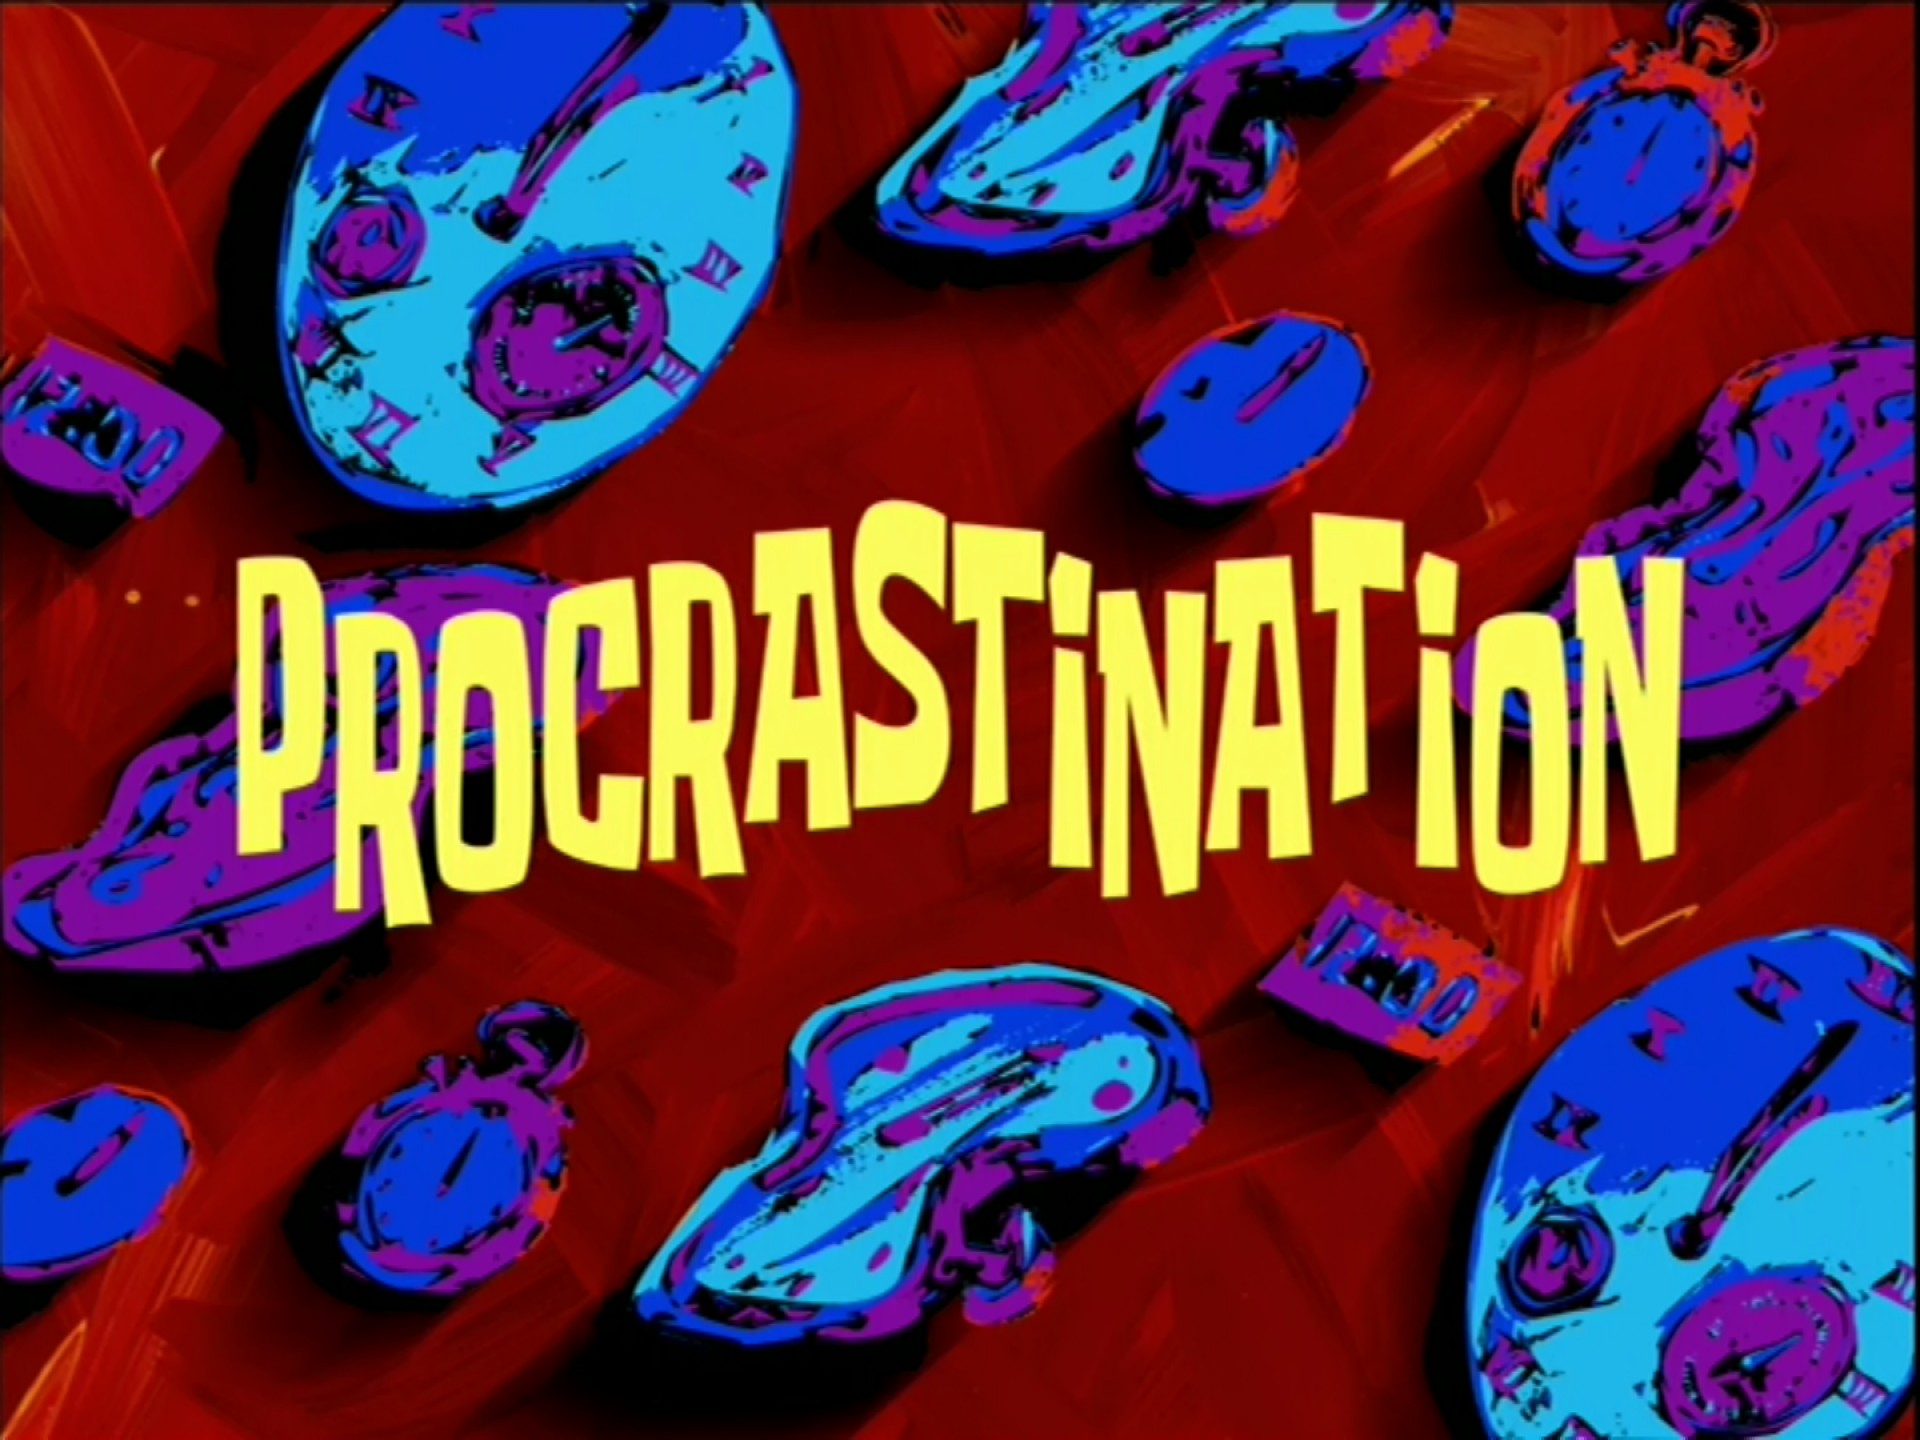 009 Procrastinationtranscript Encyclopedia Spongebobia Fandom Spongebob Writing Essay The Latestcb201806220 Gif Font For Hours Meme Rap Surprising Pencil 1920